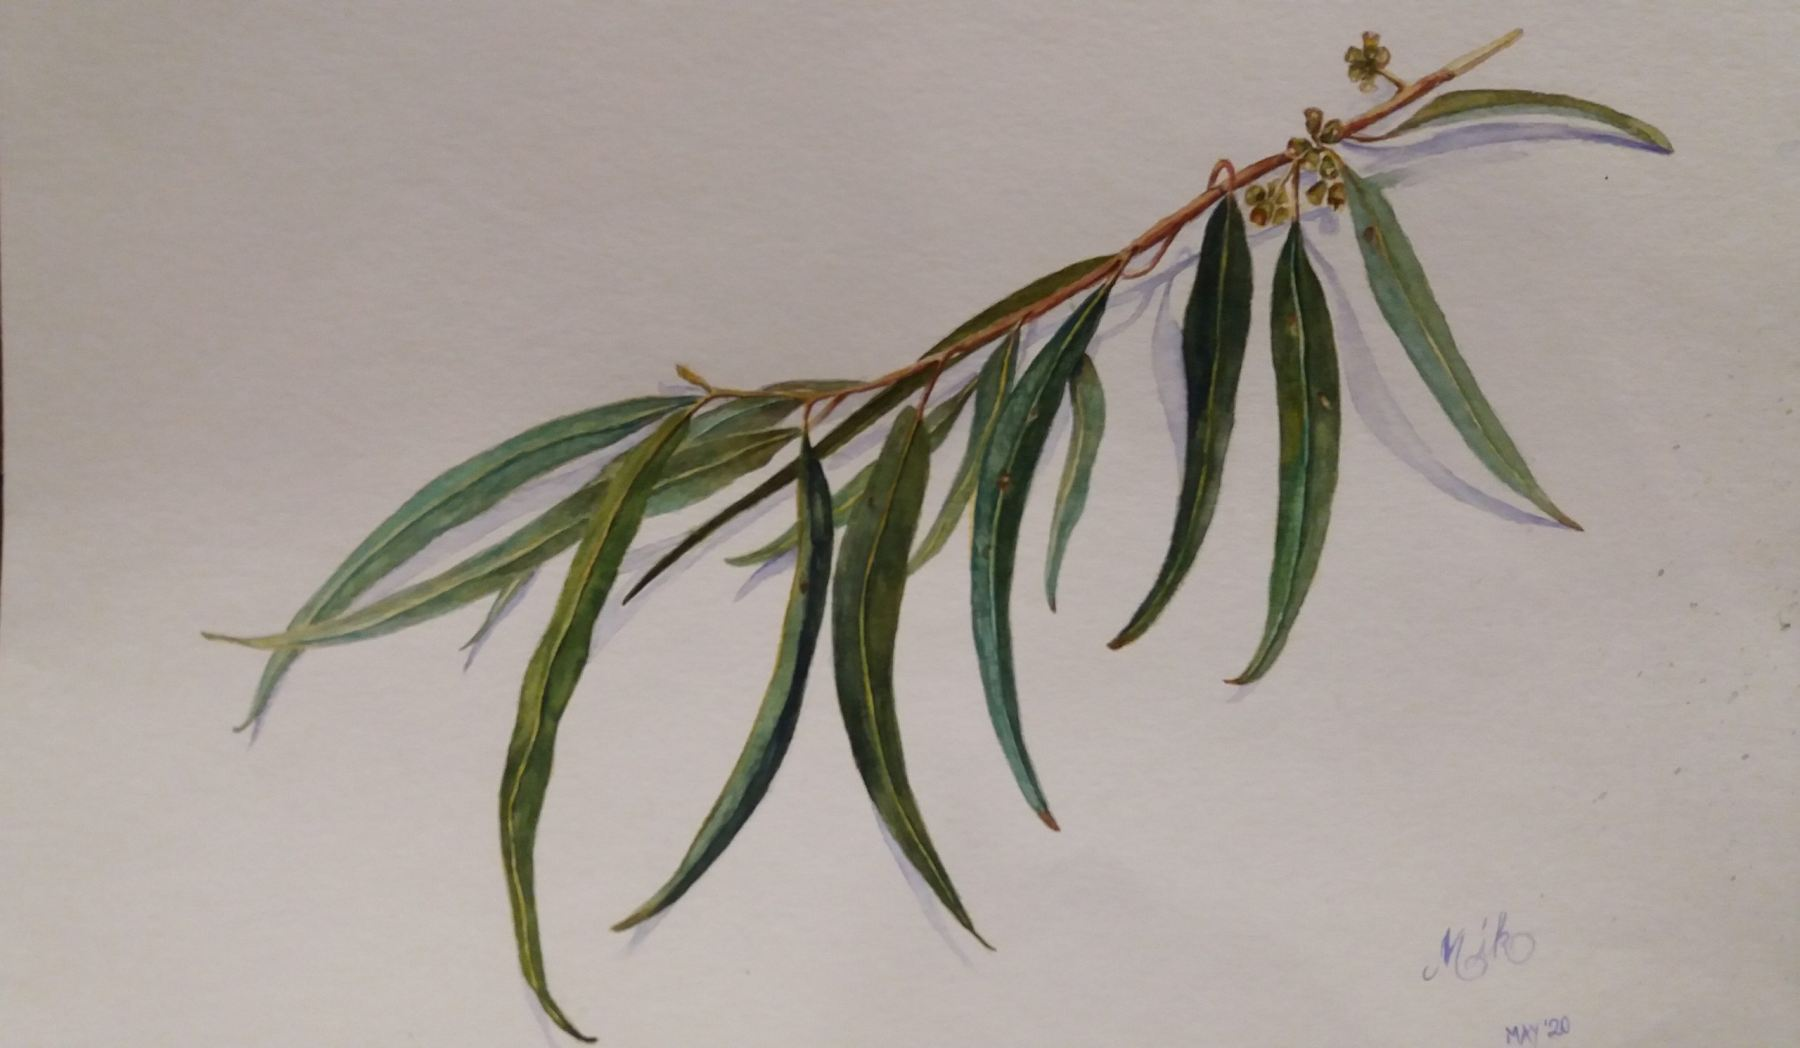 Monika McCallum - Wonthaggi Wetlands Eucalyptus Leaves